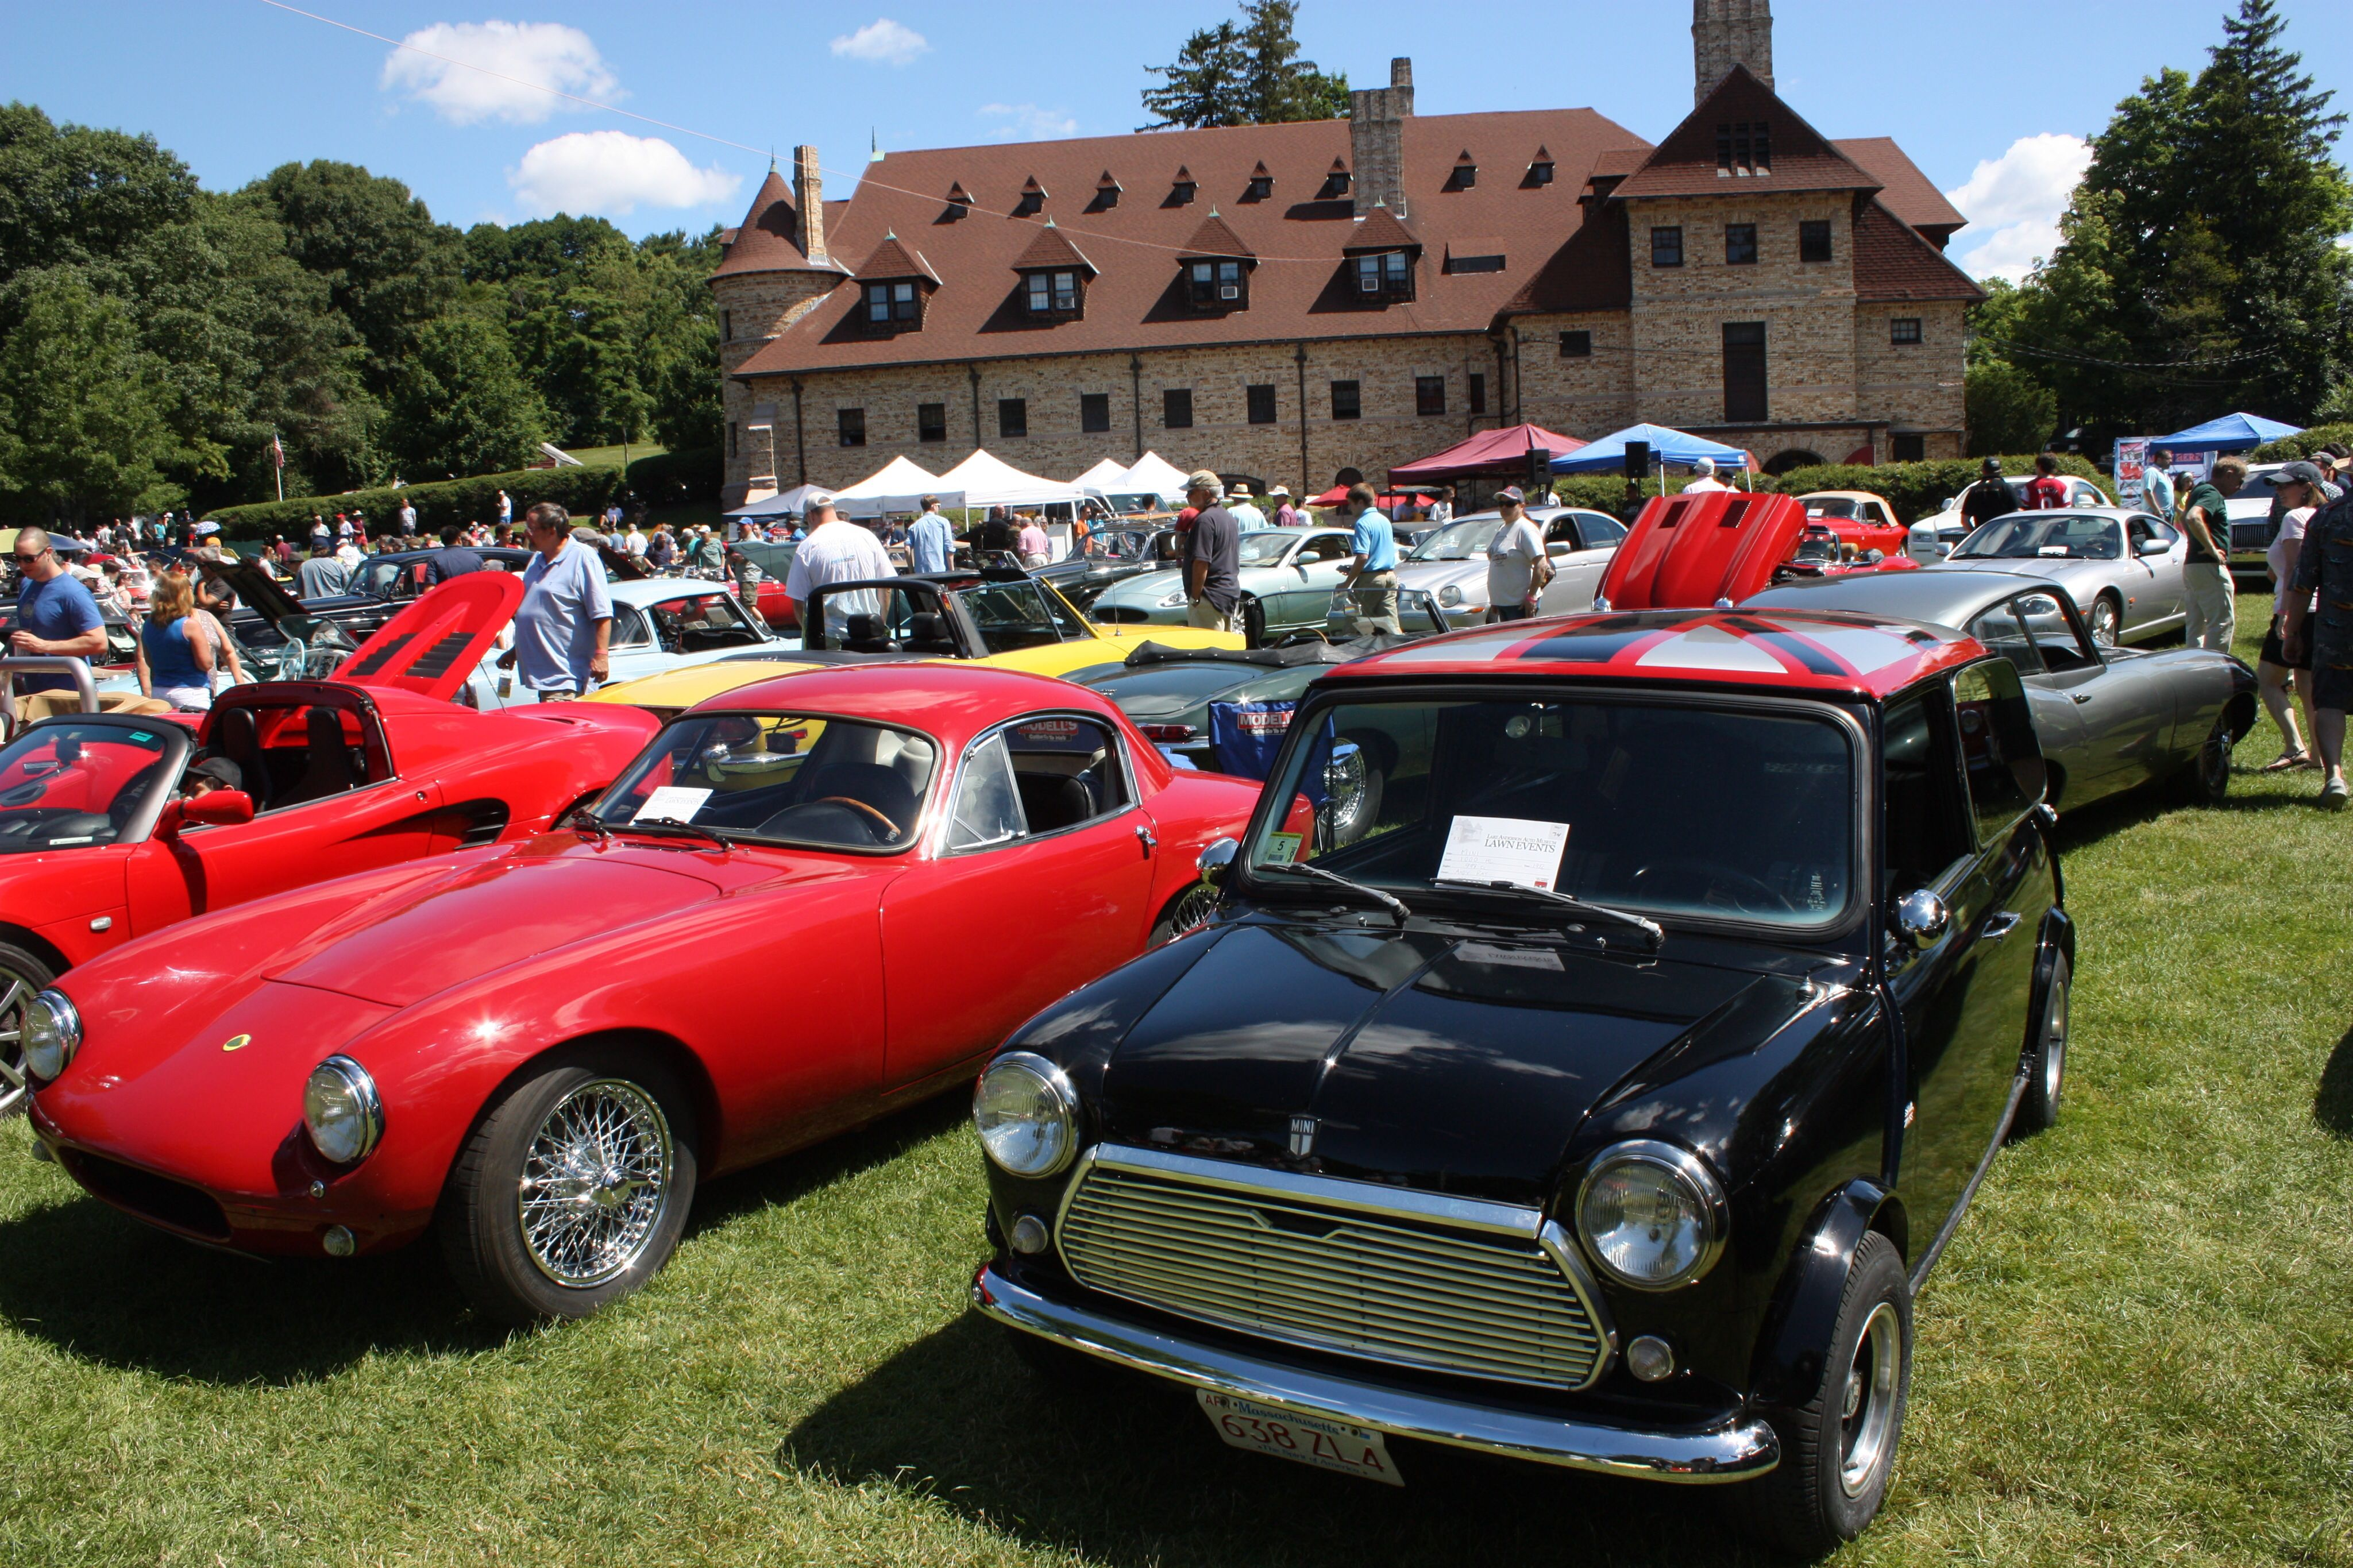 First Car Show British Car Day  Larz Anderson Auto Museum - Classic car museums in usa